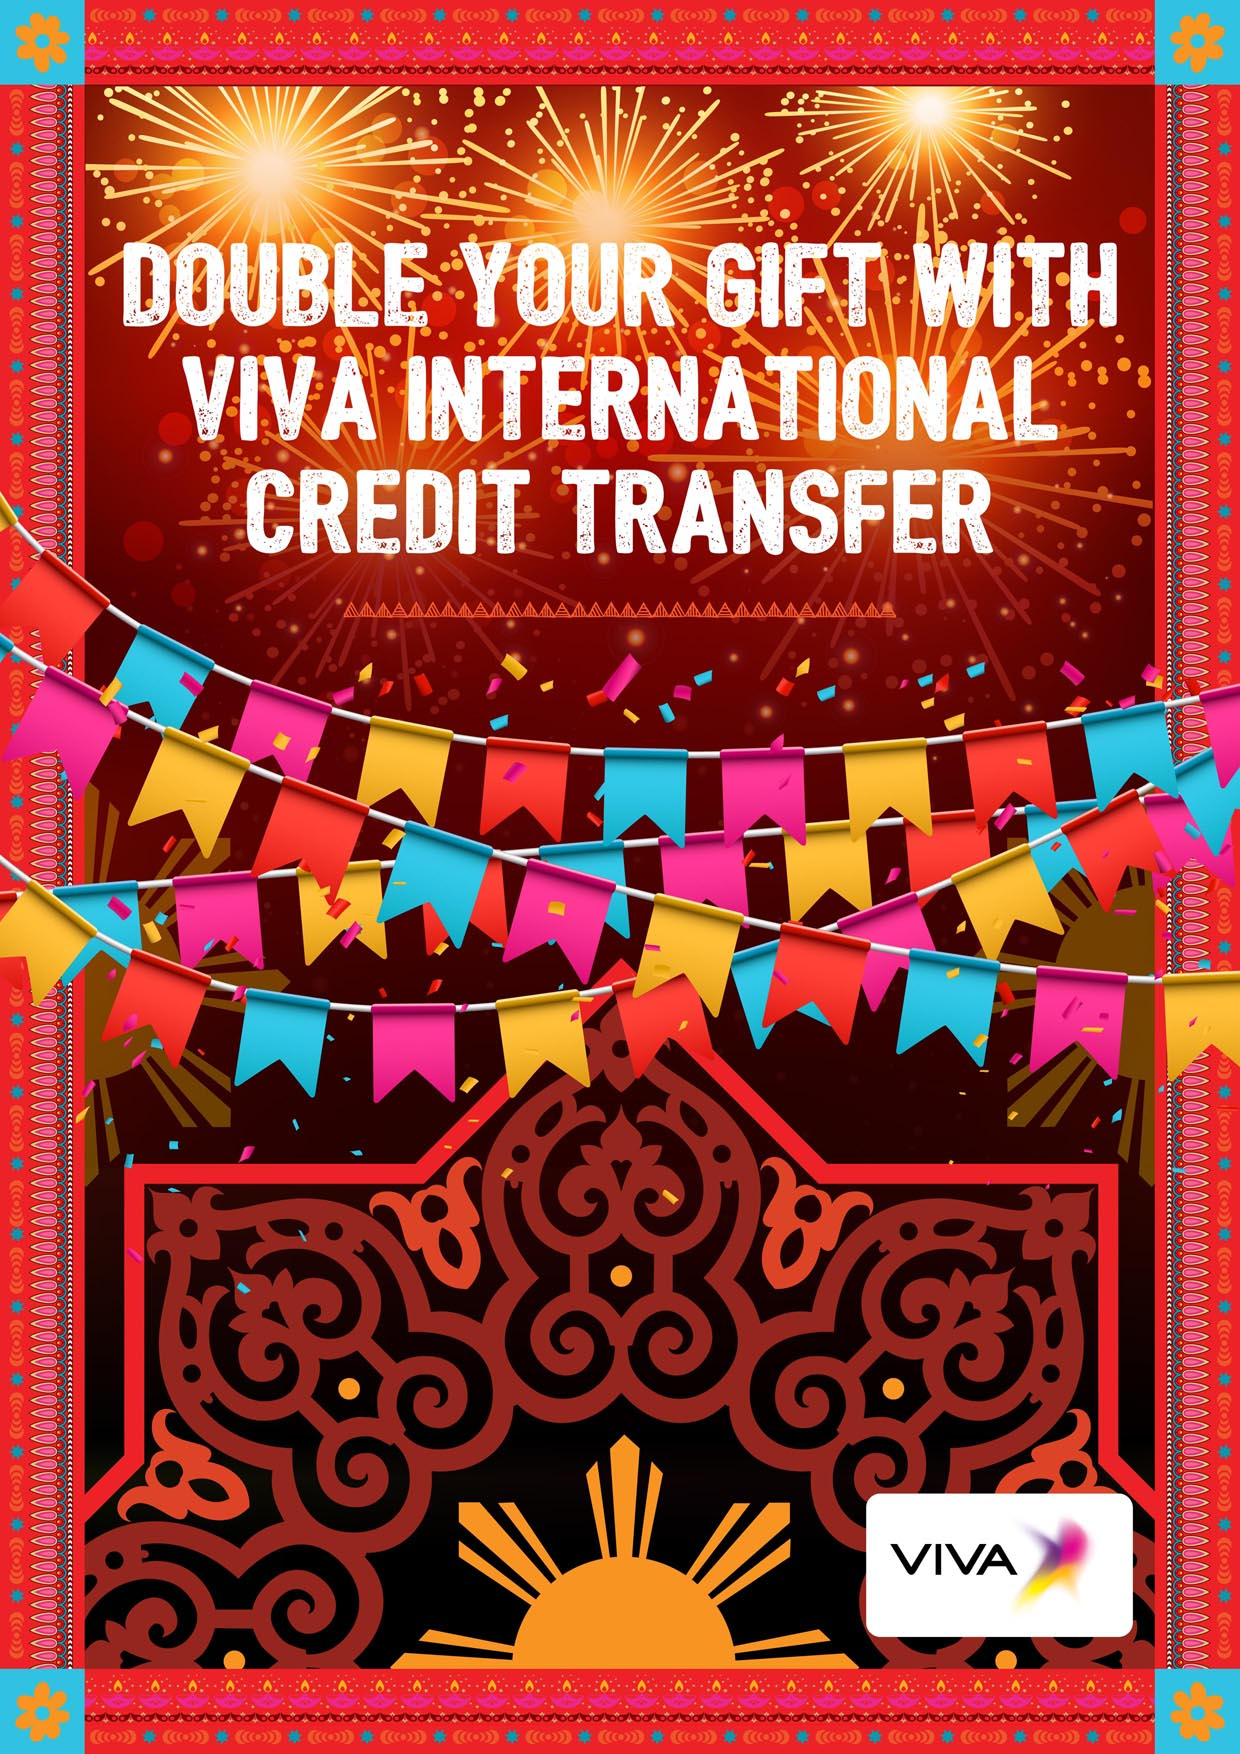 Win a chance to double your credit with VIVA's International